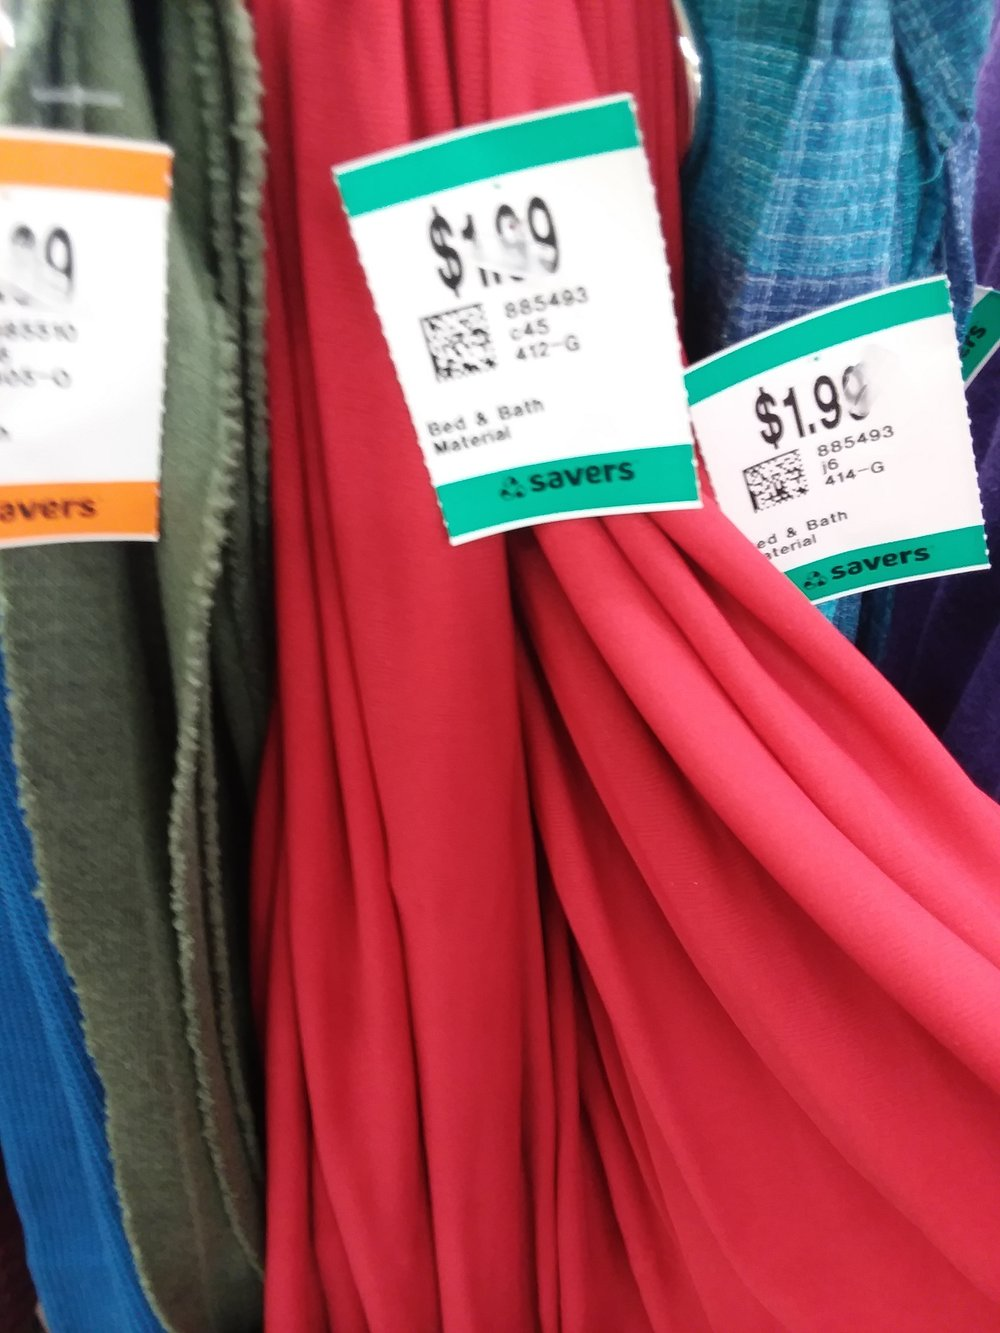 See those prices? That's several yards of lovely fabric for $2-5. People, thrift stores are your friend. Do you have fabric you don't want? If you can't swap to someone, bring it to a thrift store so I can buy it.